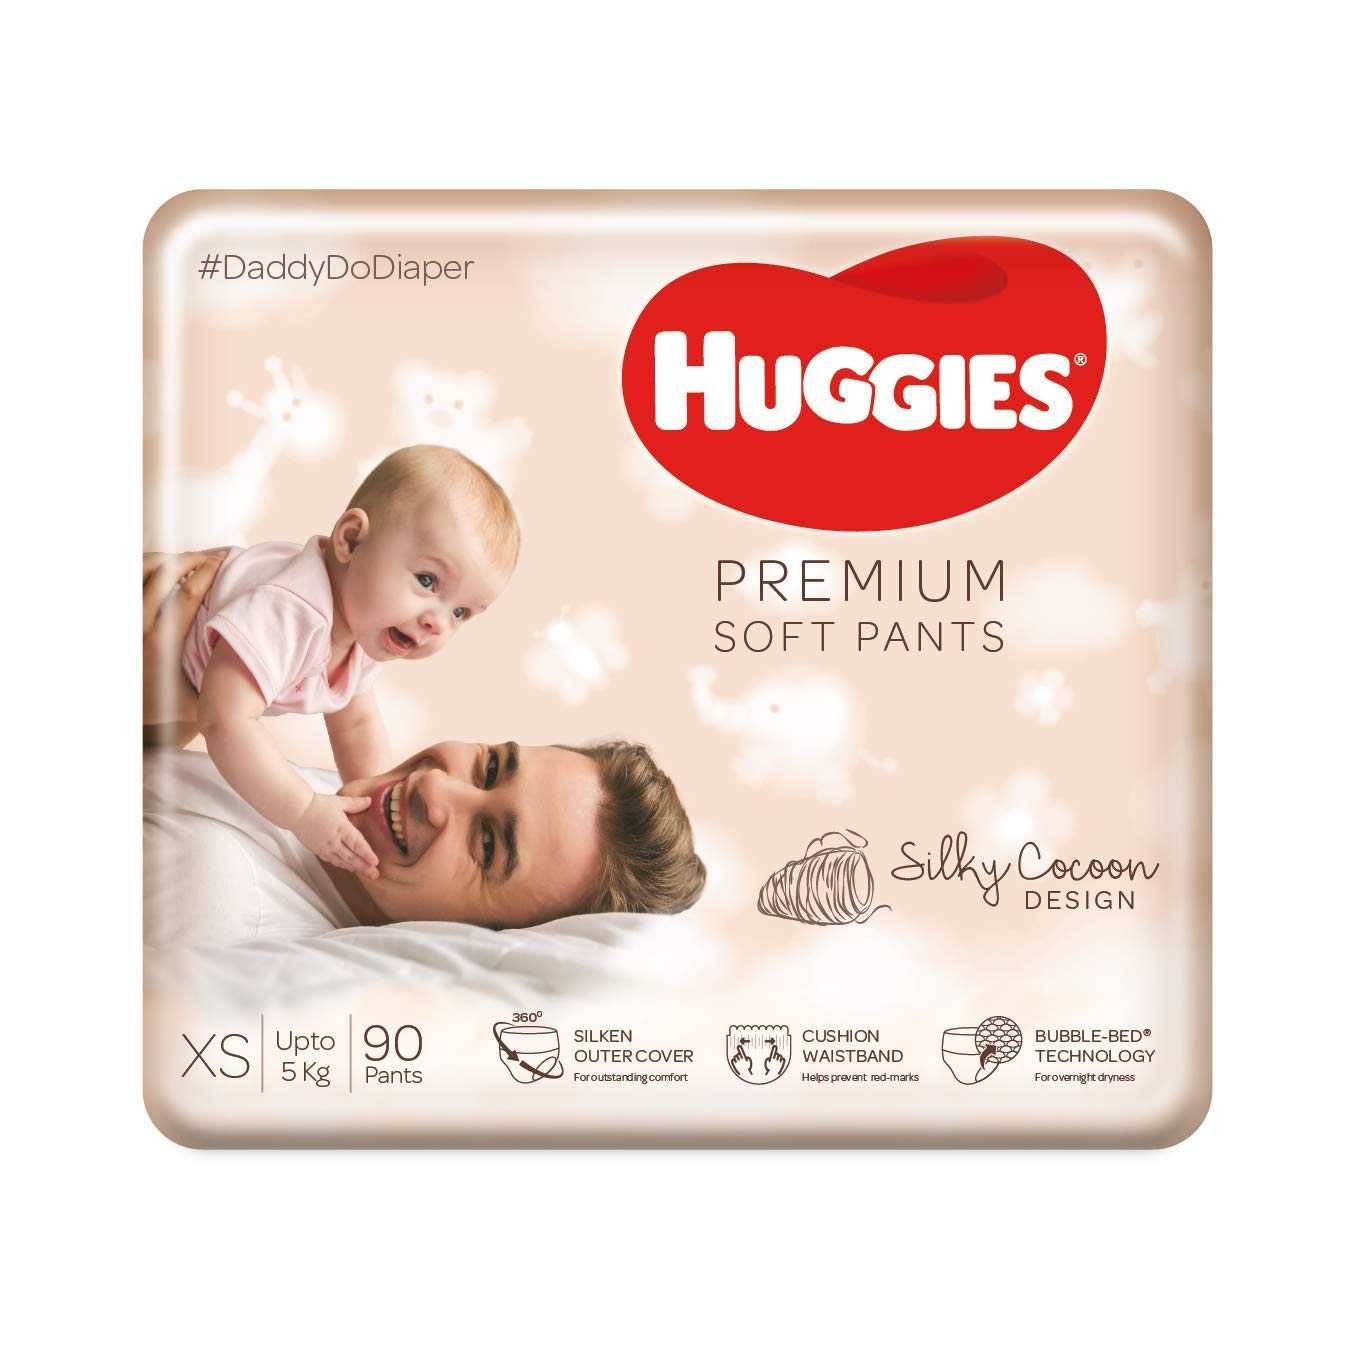 Huggies Premium Soft Pants, Extra Small (XS) Size Daipers, 90 Count